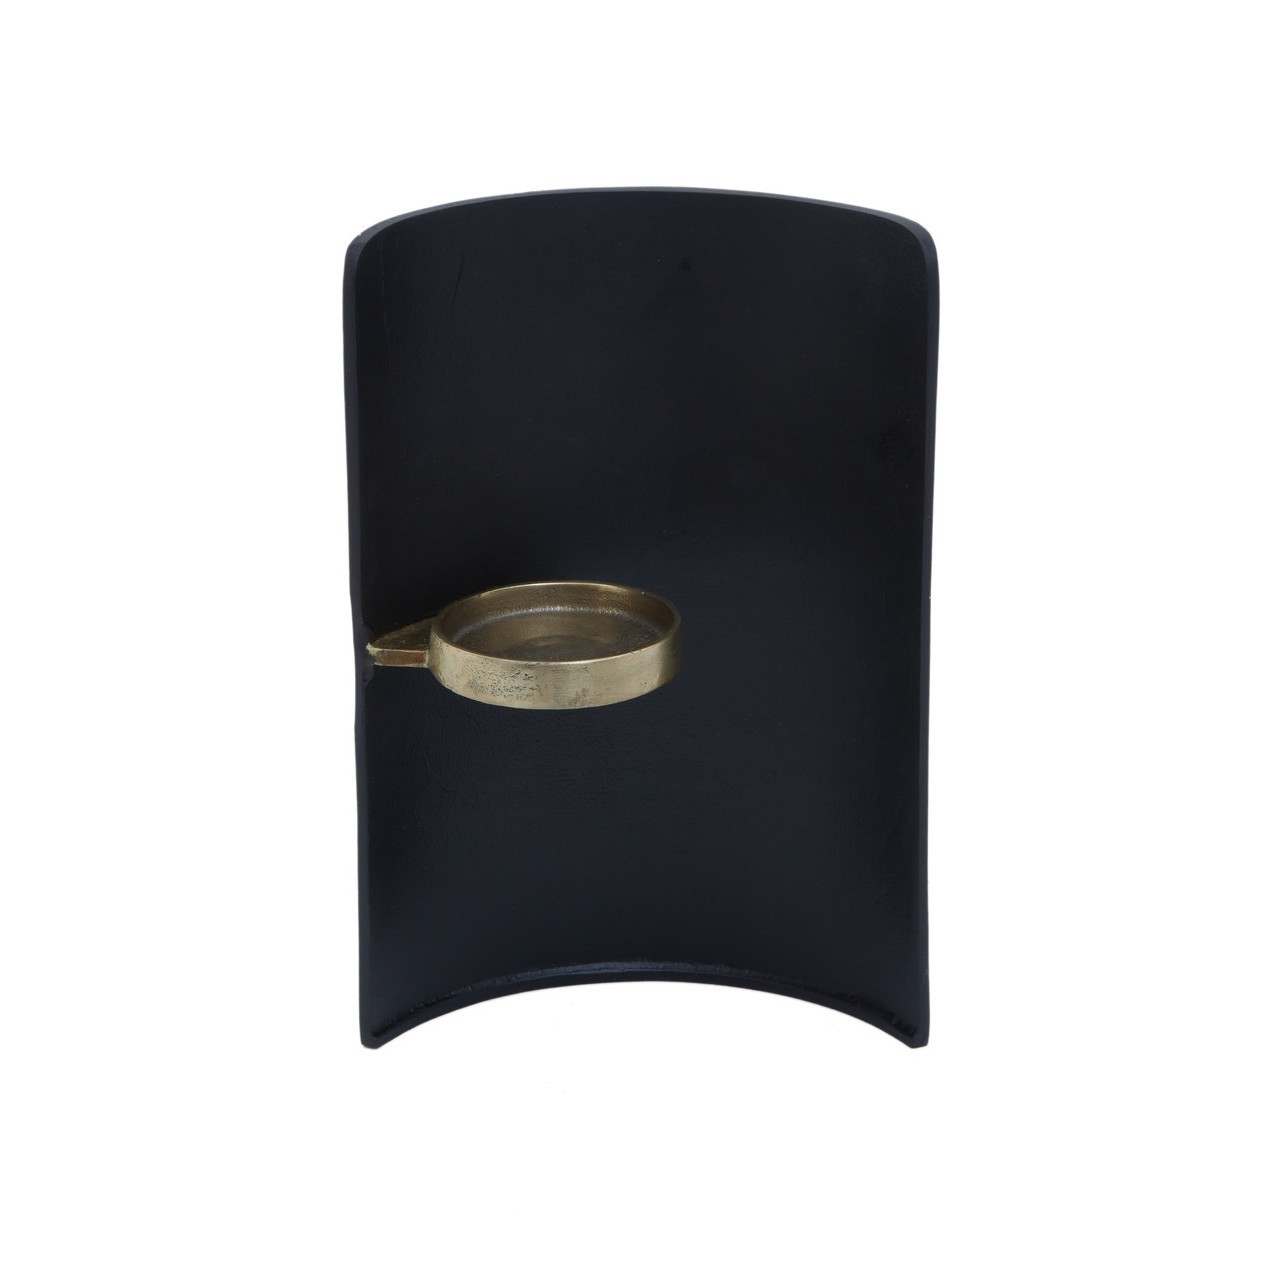 Daito Black Gold Finish Candle Holder